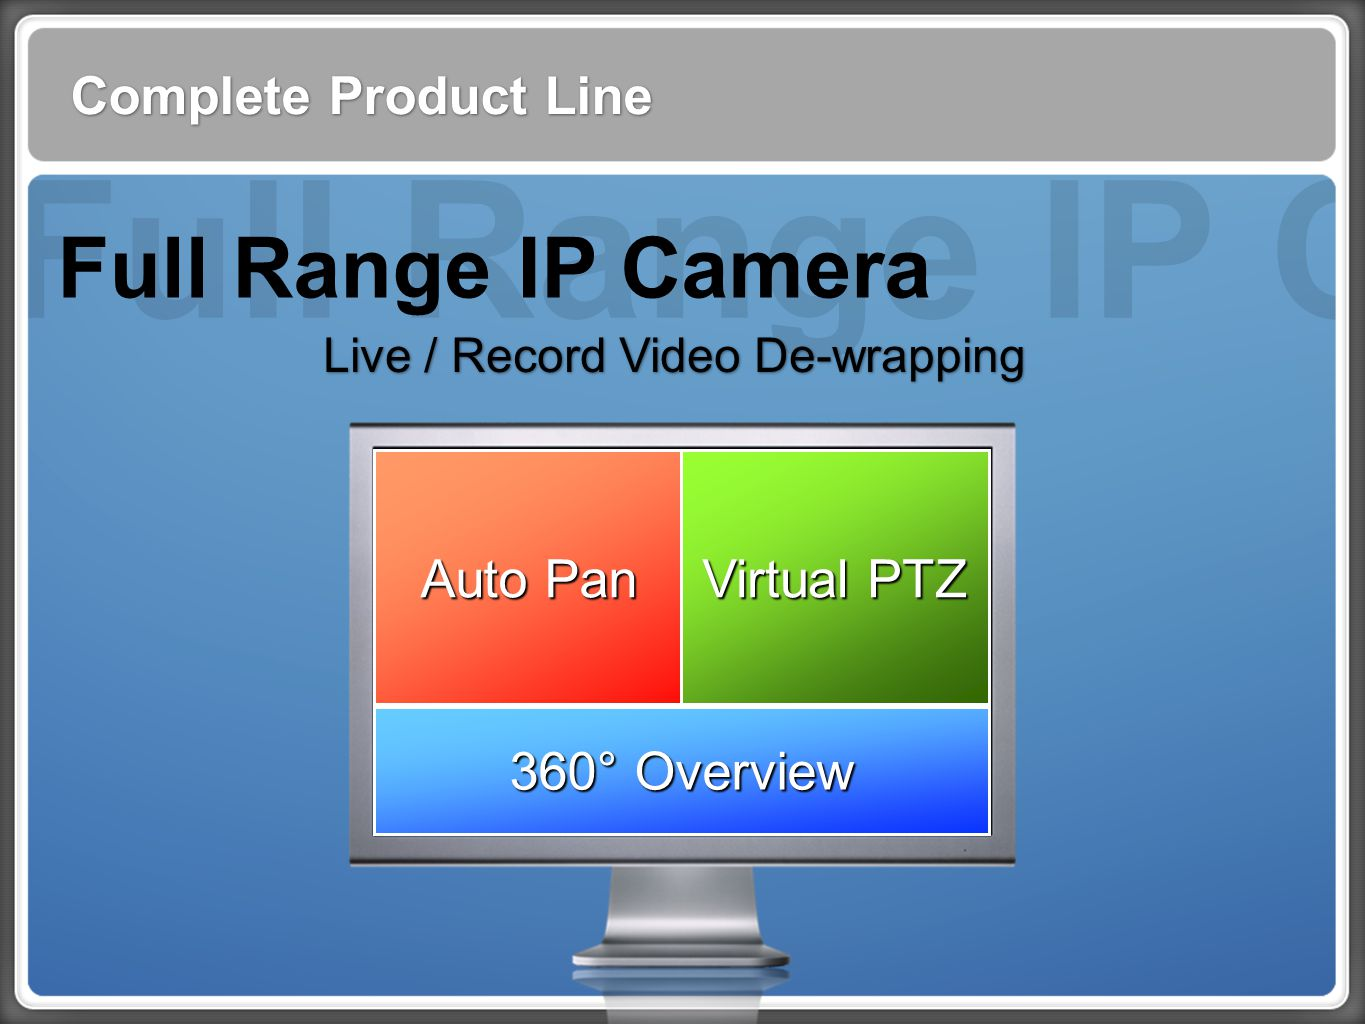 Full Range IP Cam Complete Product Line Full Range IP Camera Live / Record Video De-wrapping Auto Pan Virtual PTZ 360° Overview